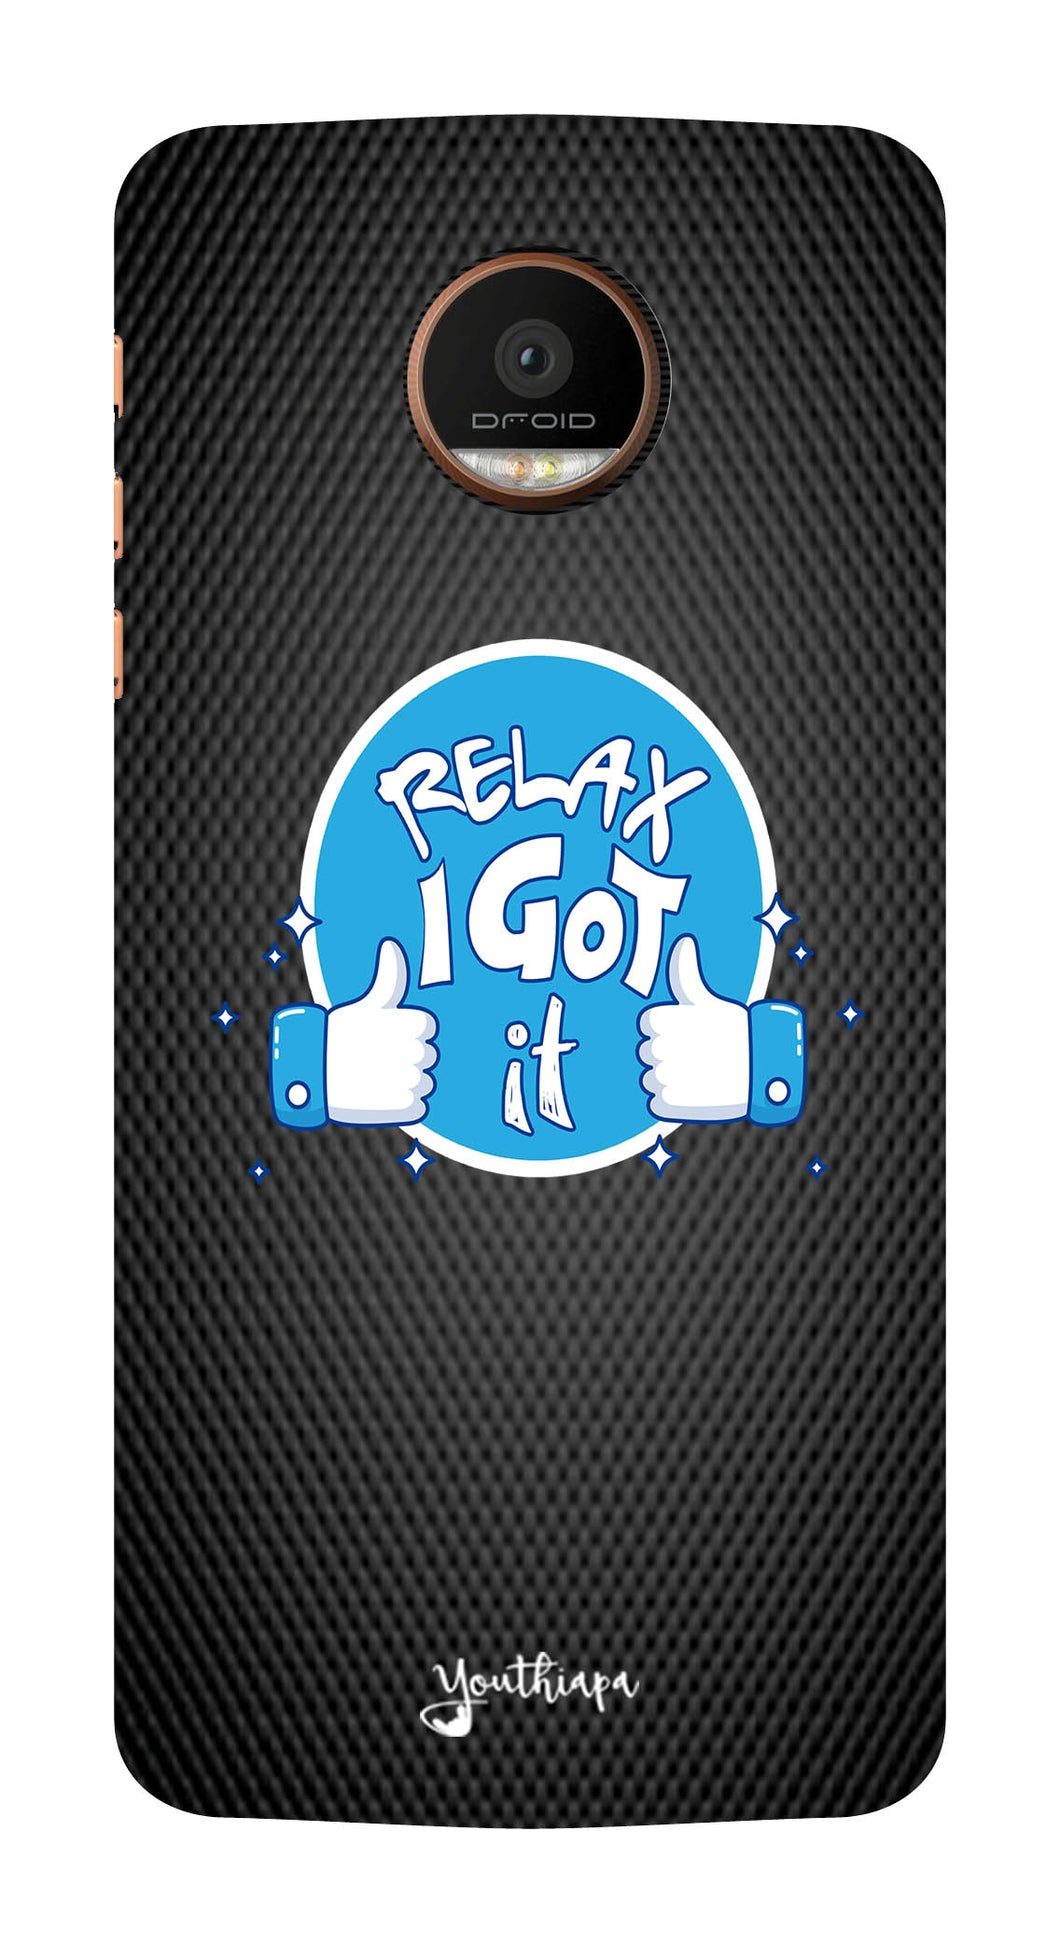 Relax Edition for Moto Z Force